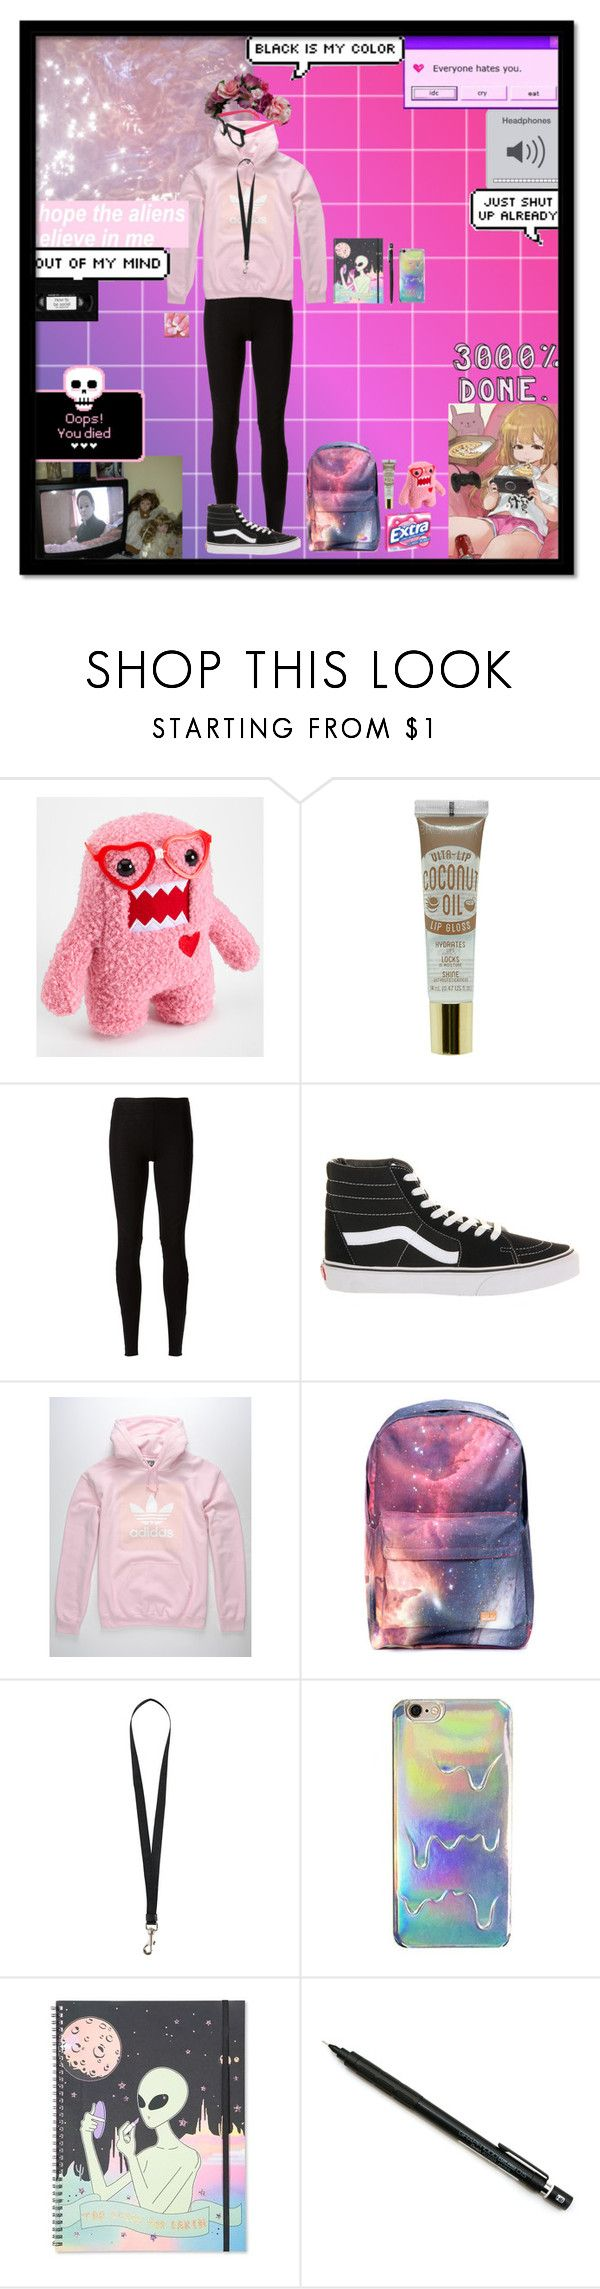 """Untitled #4"" by frank-iero-is-our-god ❤ liked on Polyvore featuring Rick Owens Lilies, Vans, adidas, Spiral, GET LOST, Paul Frank, Marcelo Burlon and Pentel"